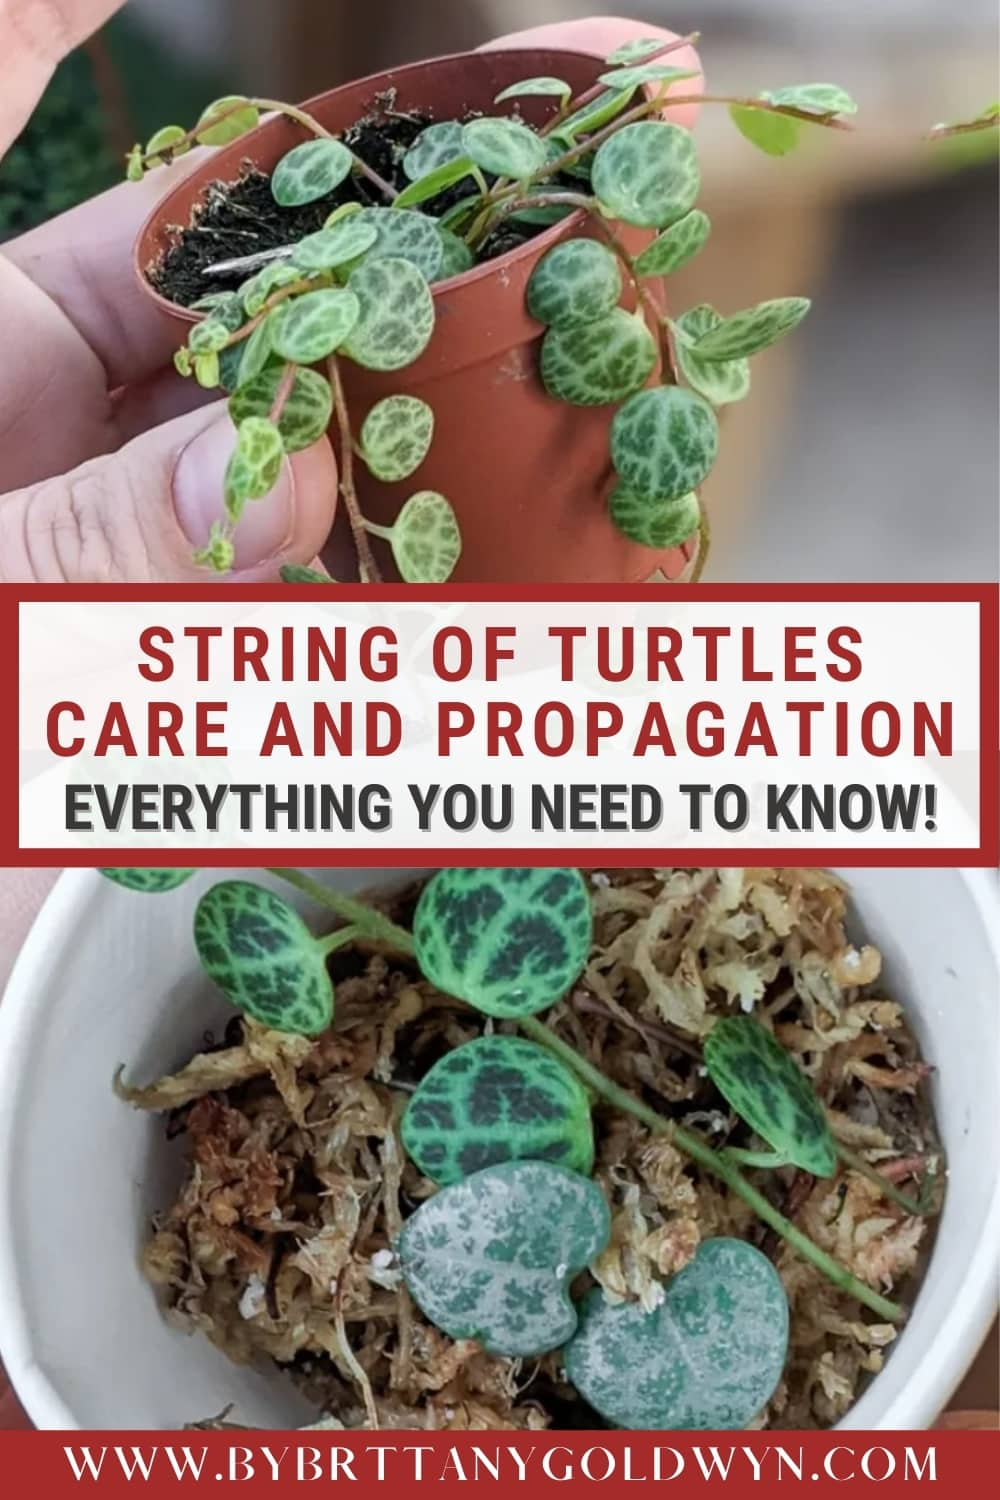 image collage of string of turtles with text overlay